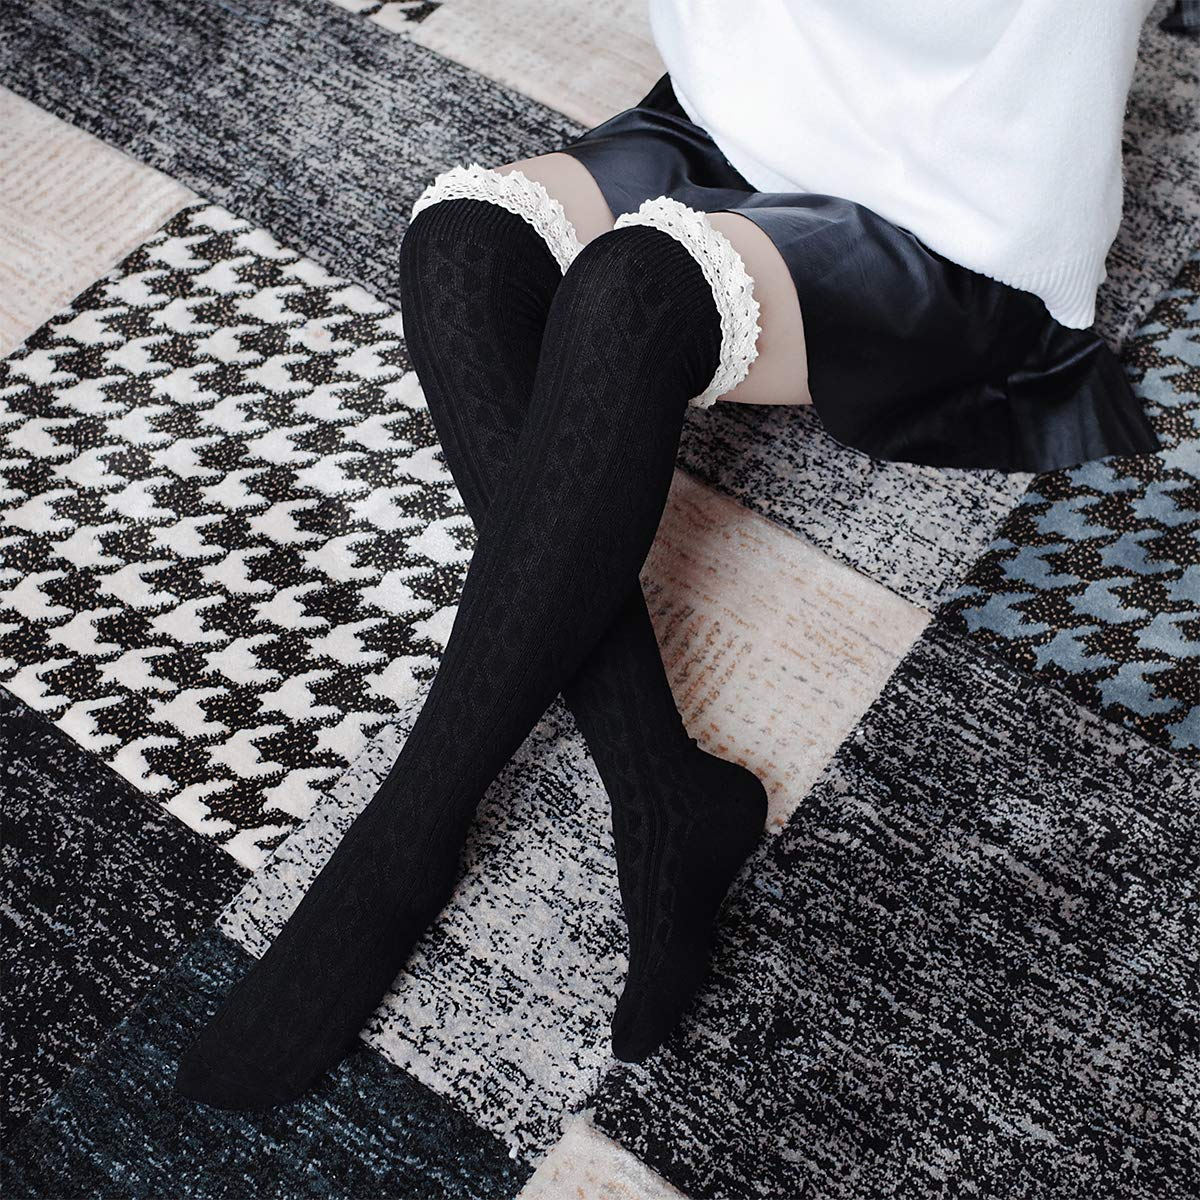 84dcc0d3c07 Ordenado Women s Thigh High Socks Valentine s Winter Cable Knit Lace Over  Knee Socks at Amazon Women s Clothing store